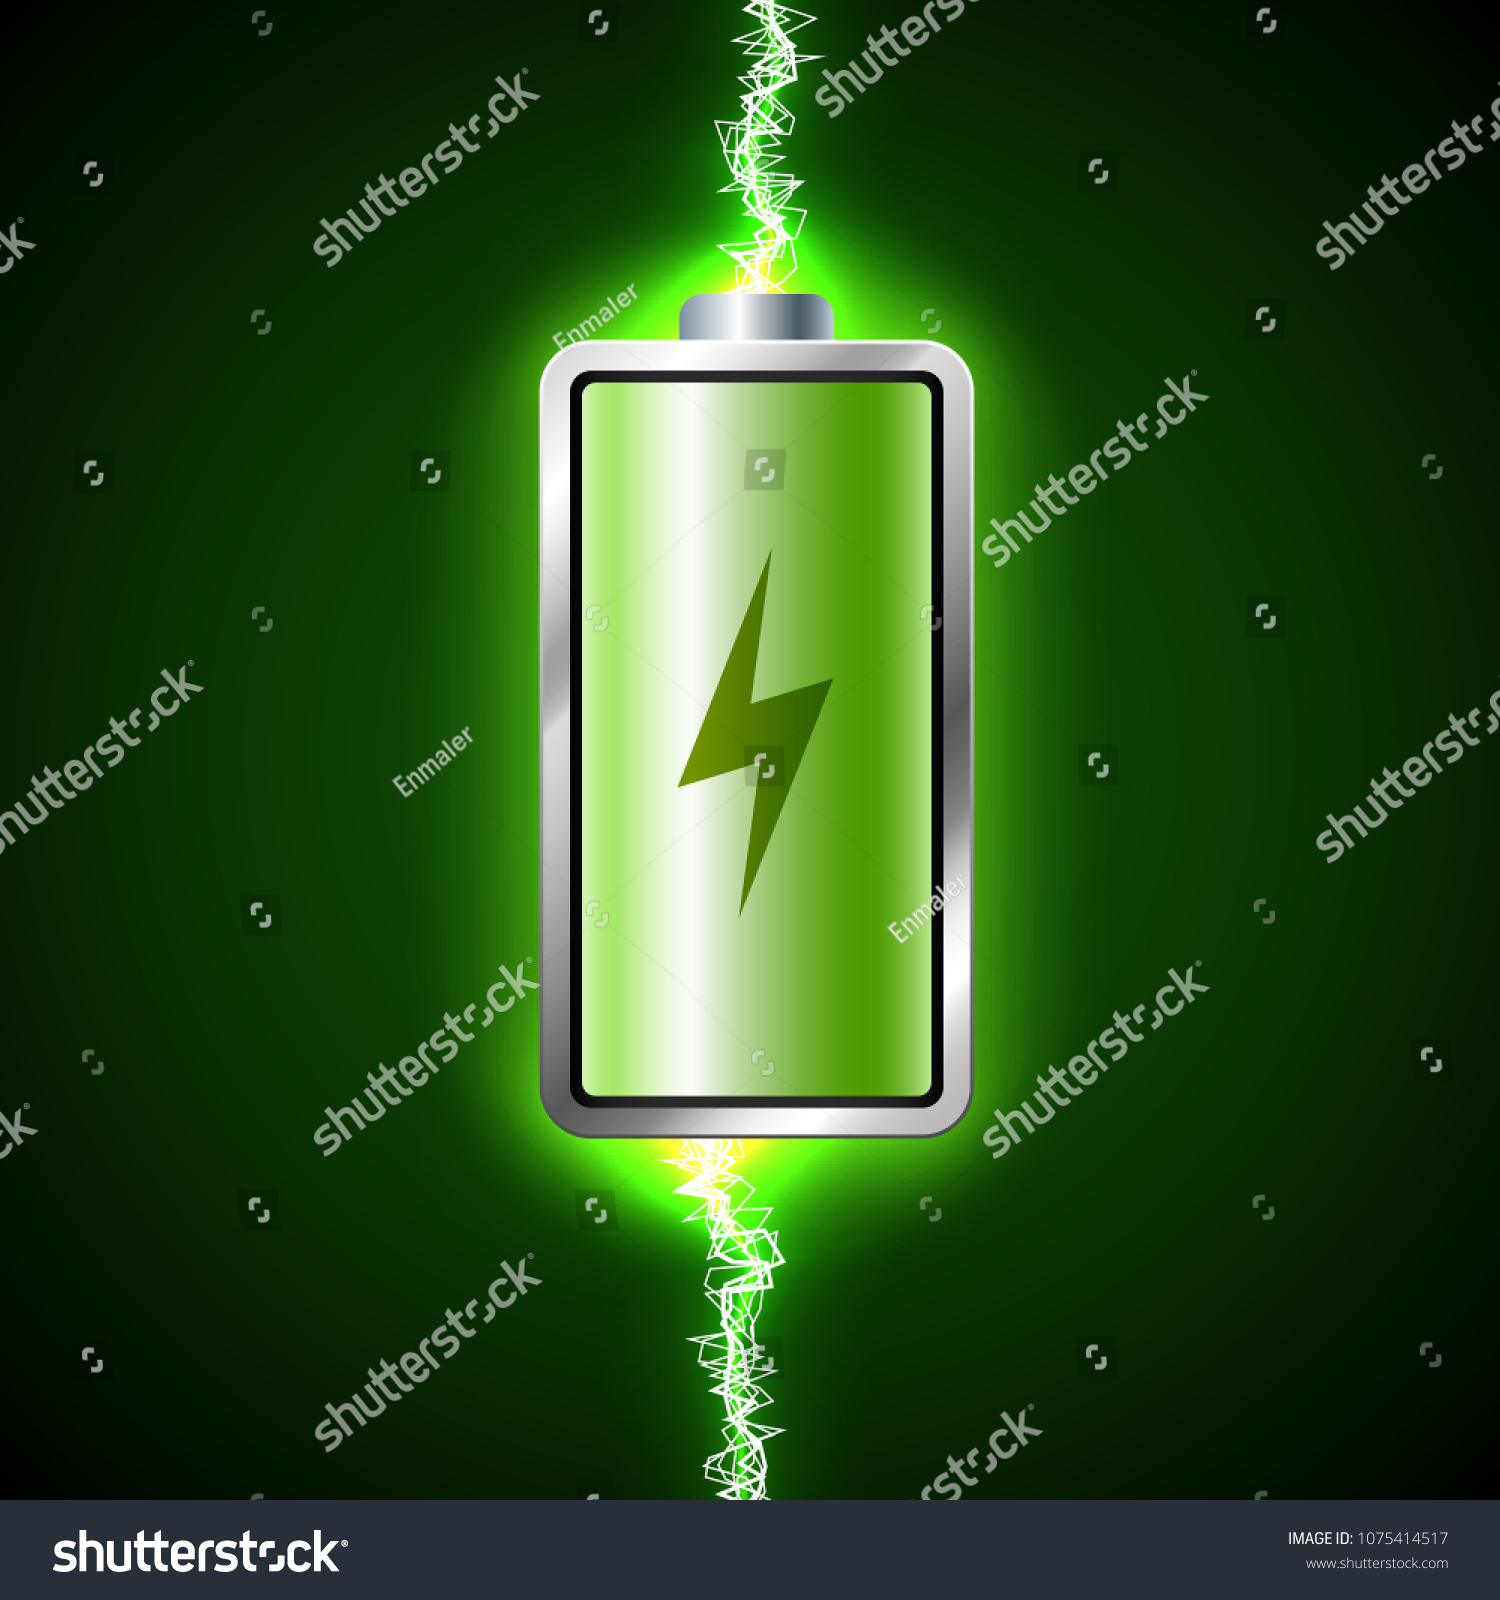 Fully Charged Green Battery Short Circuit Stock Illustration All In A What Makes Power How And Concept Of Energy